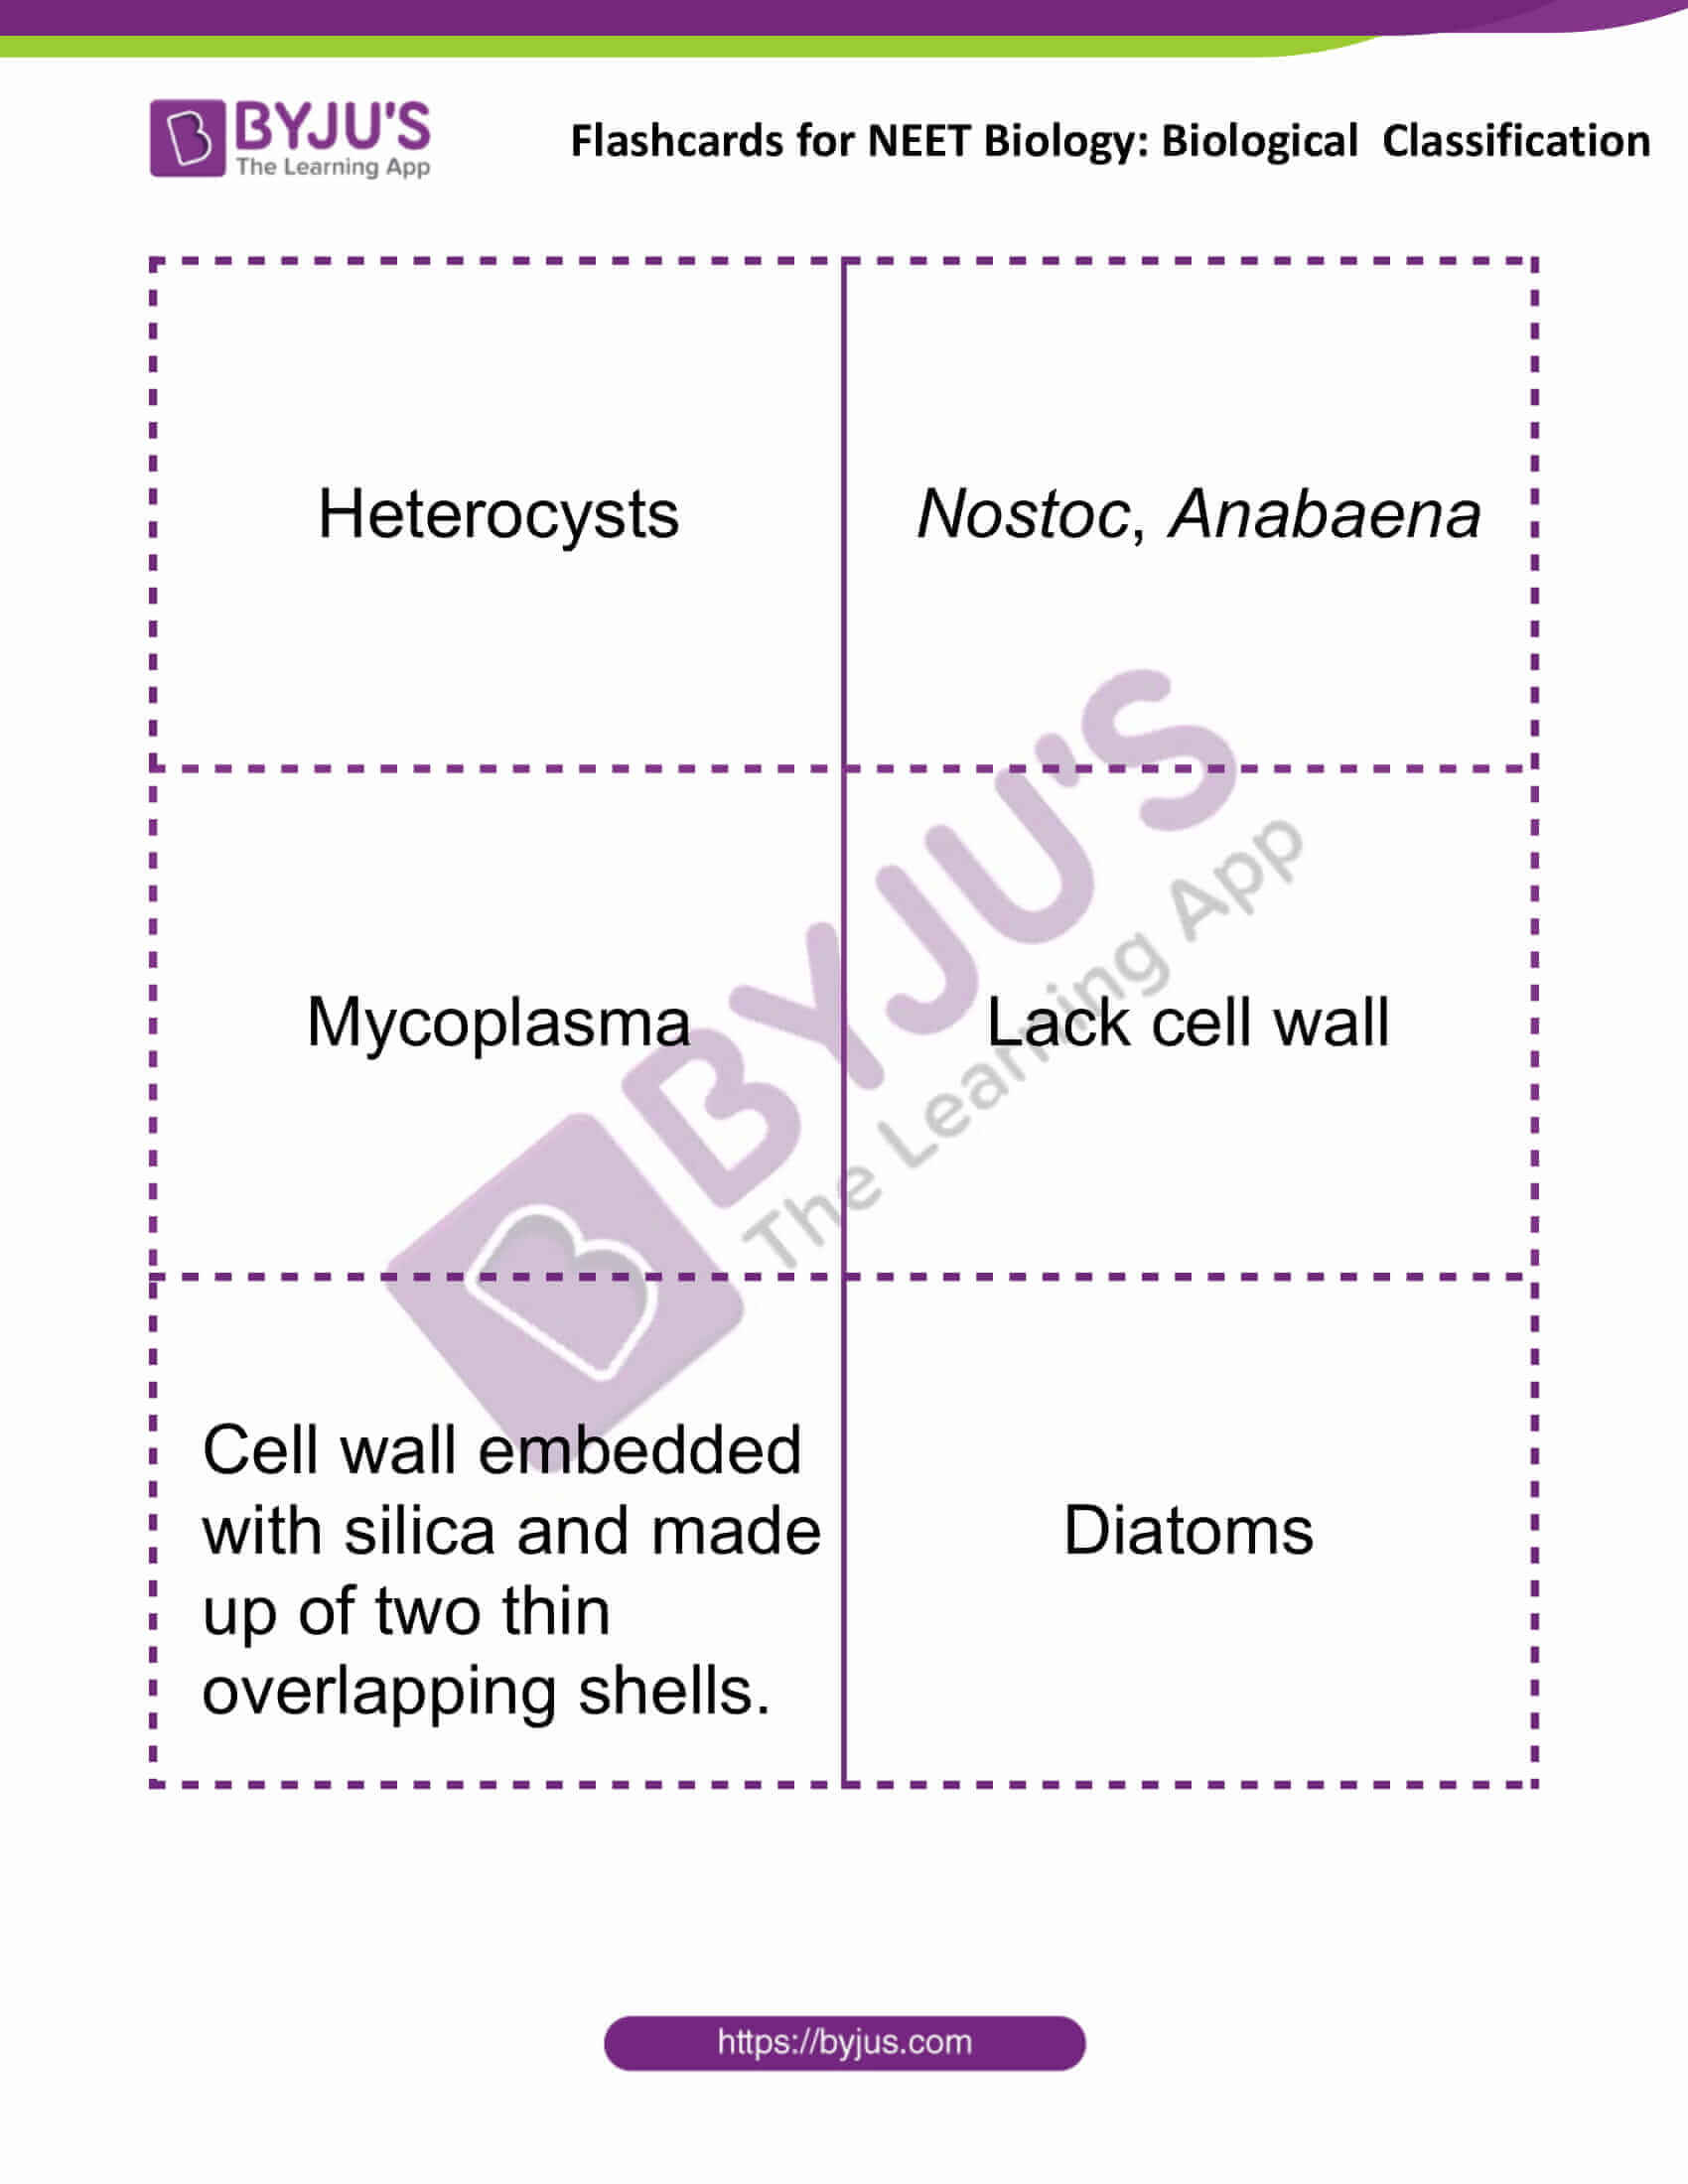 Flashcards for NEET Biological Classification 2